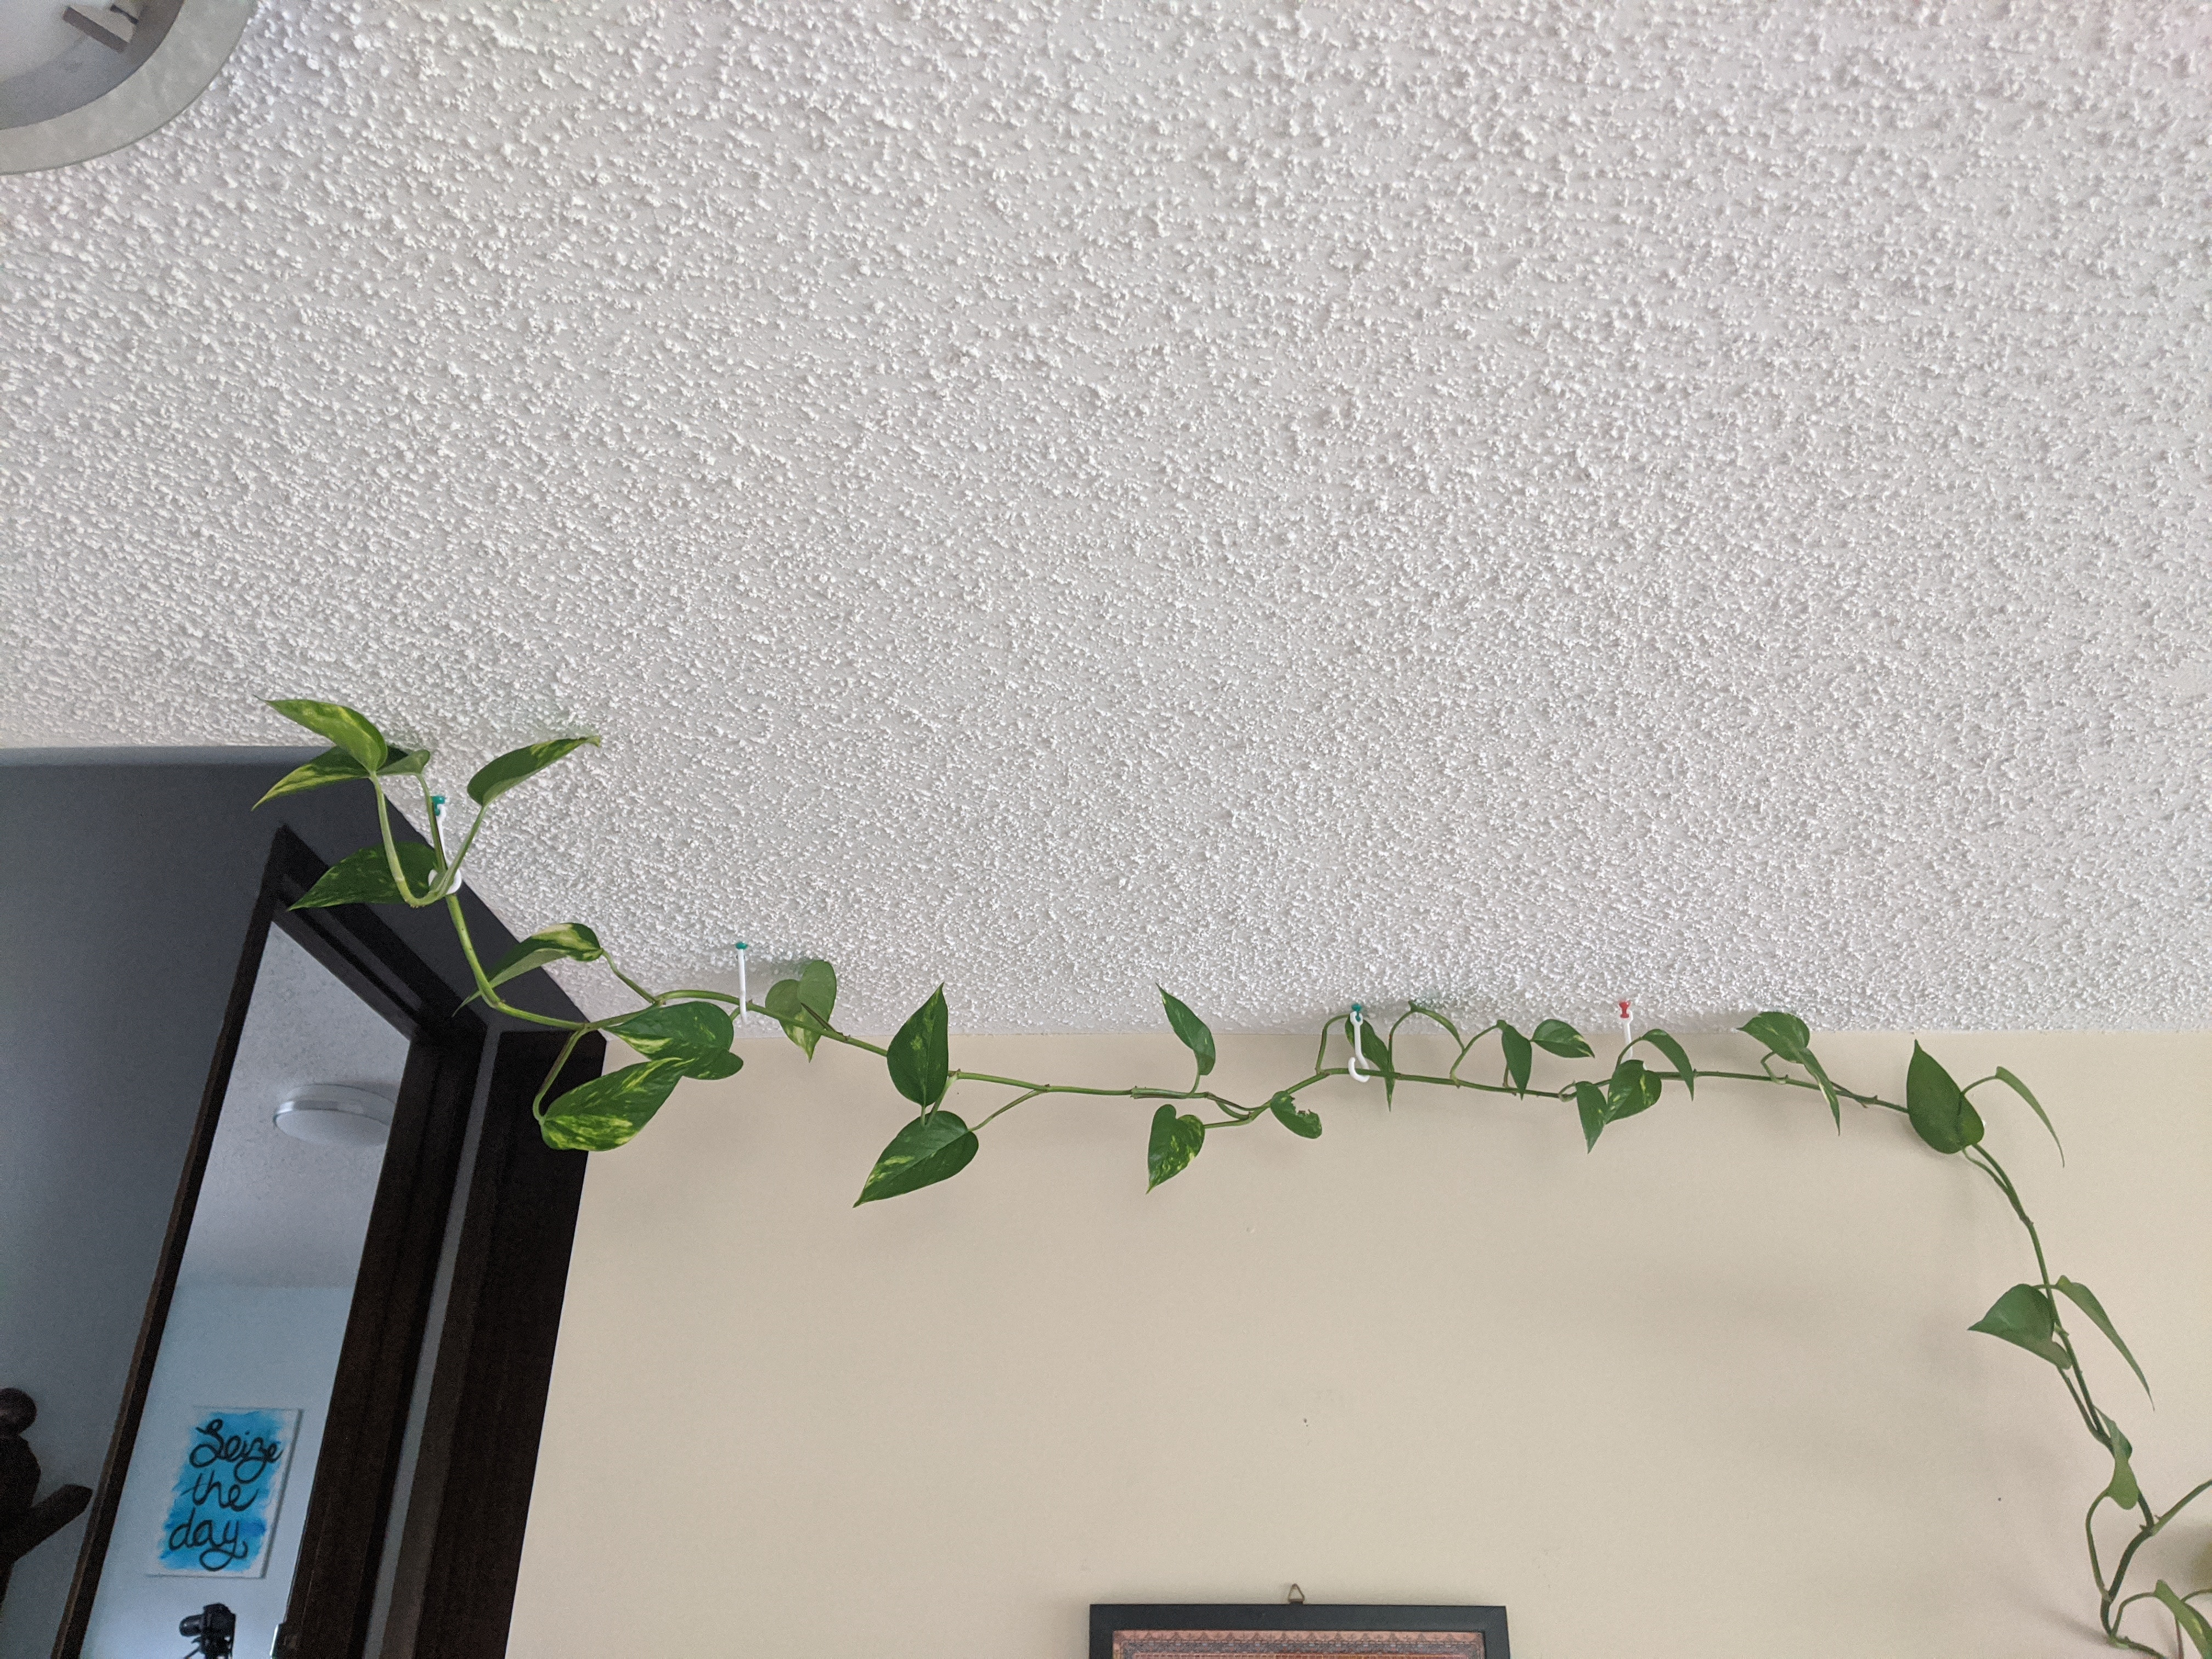 Ceiling Hook for Plants